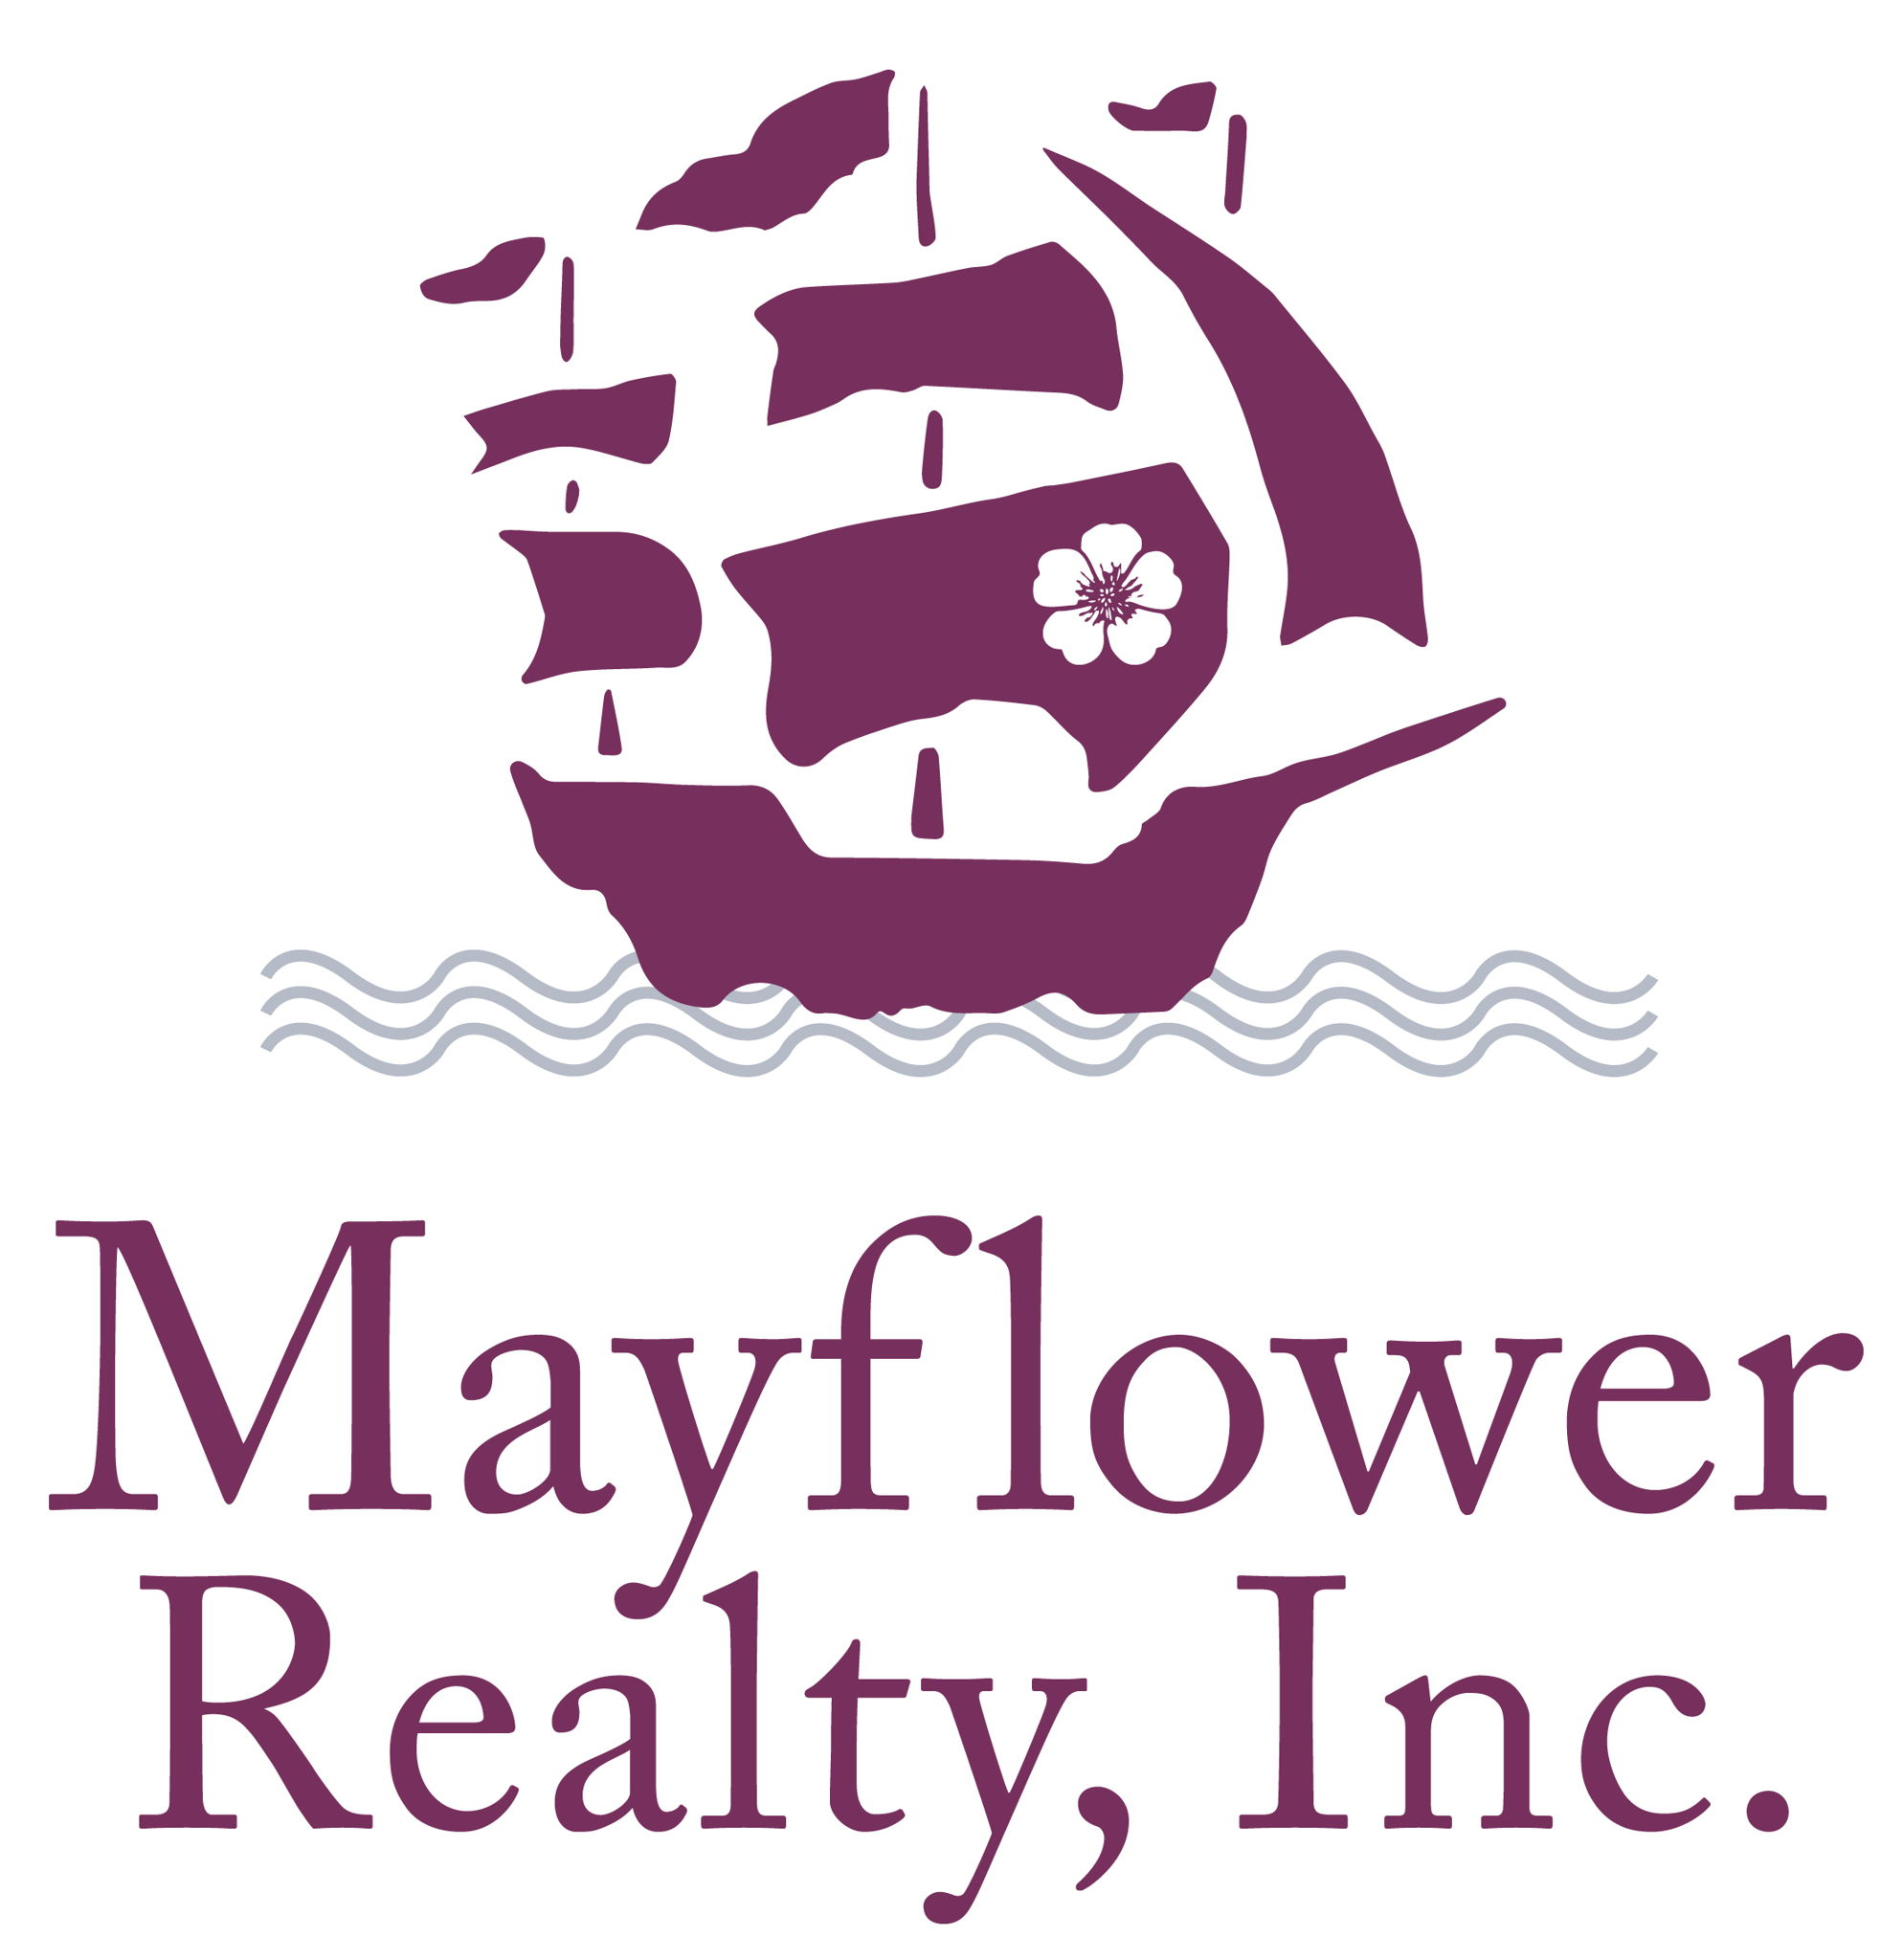 Mayflower Realty, Inc.